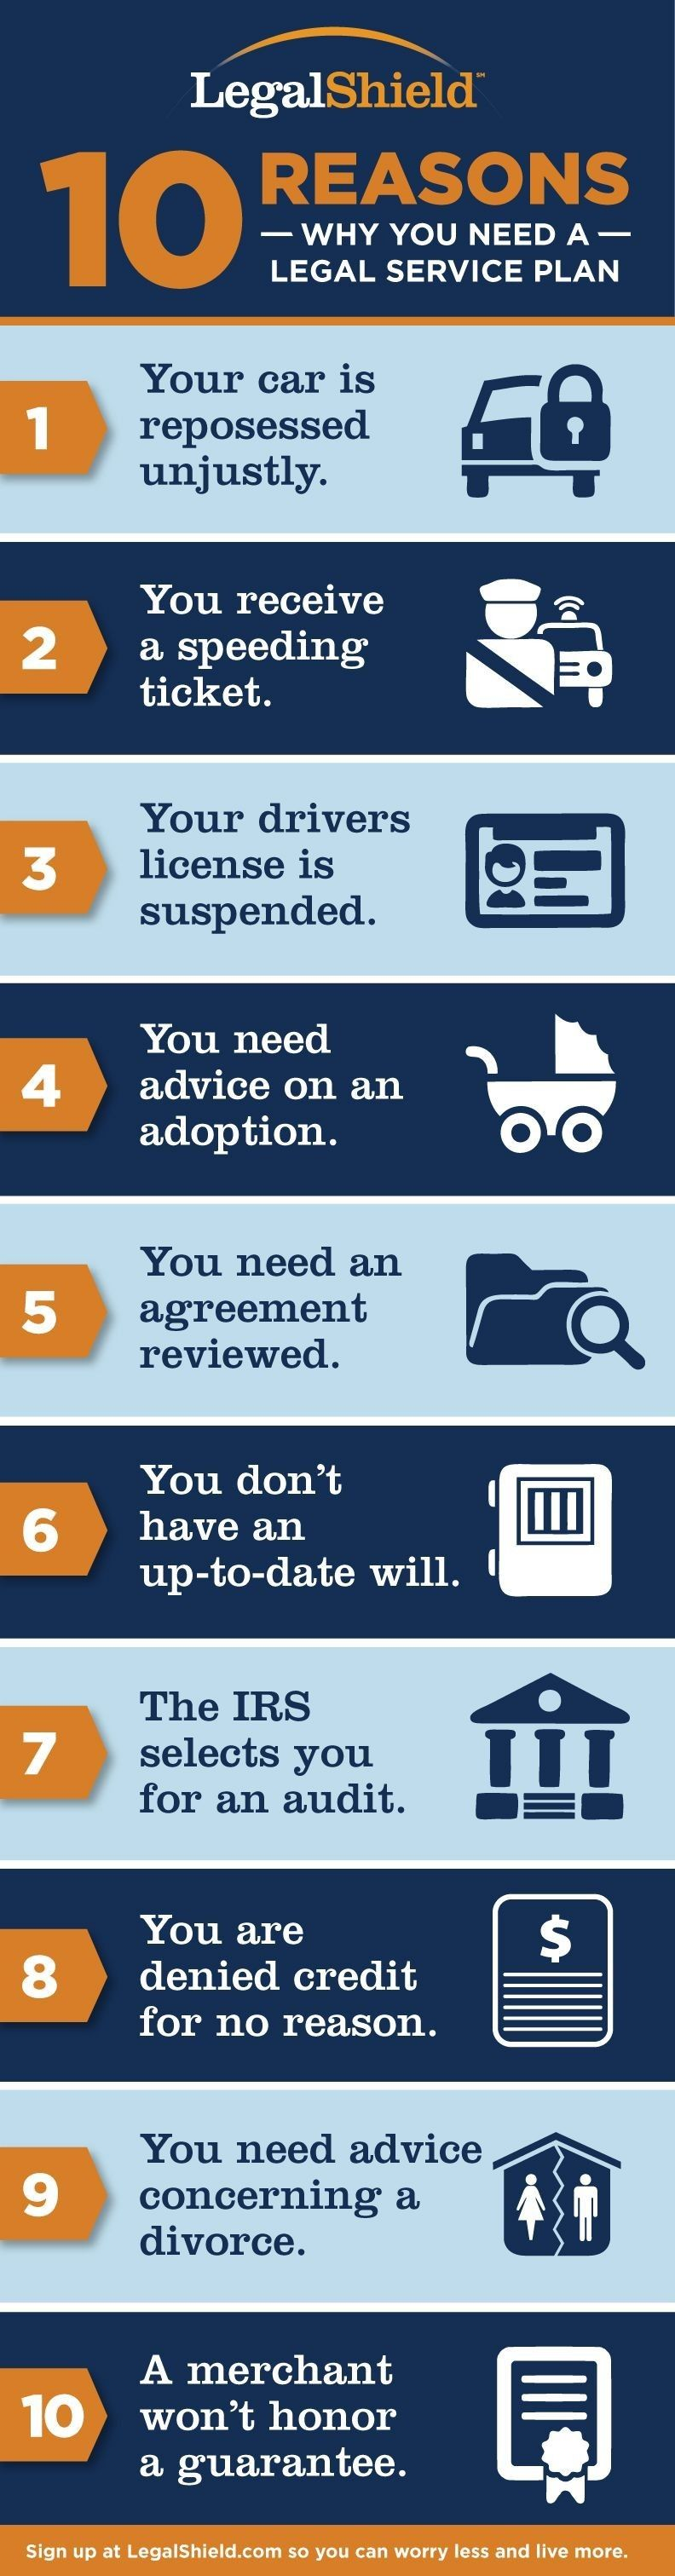 Legalshield why should you have a legal team by your side